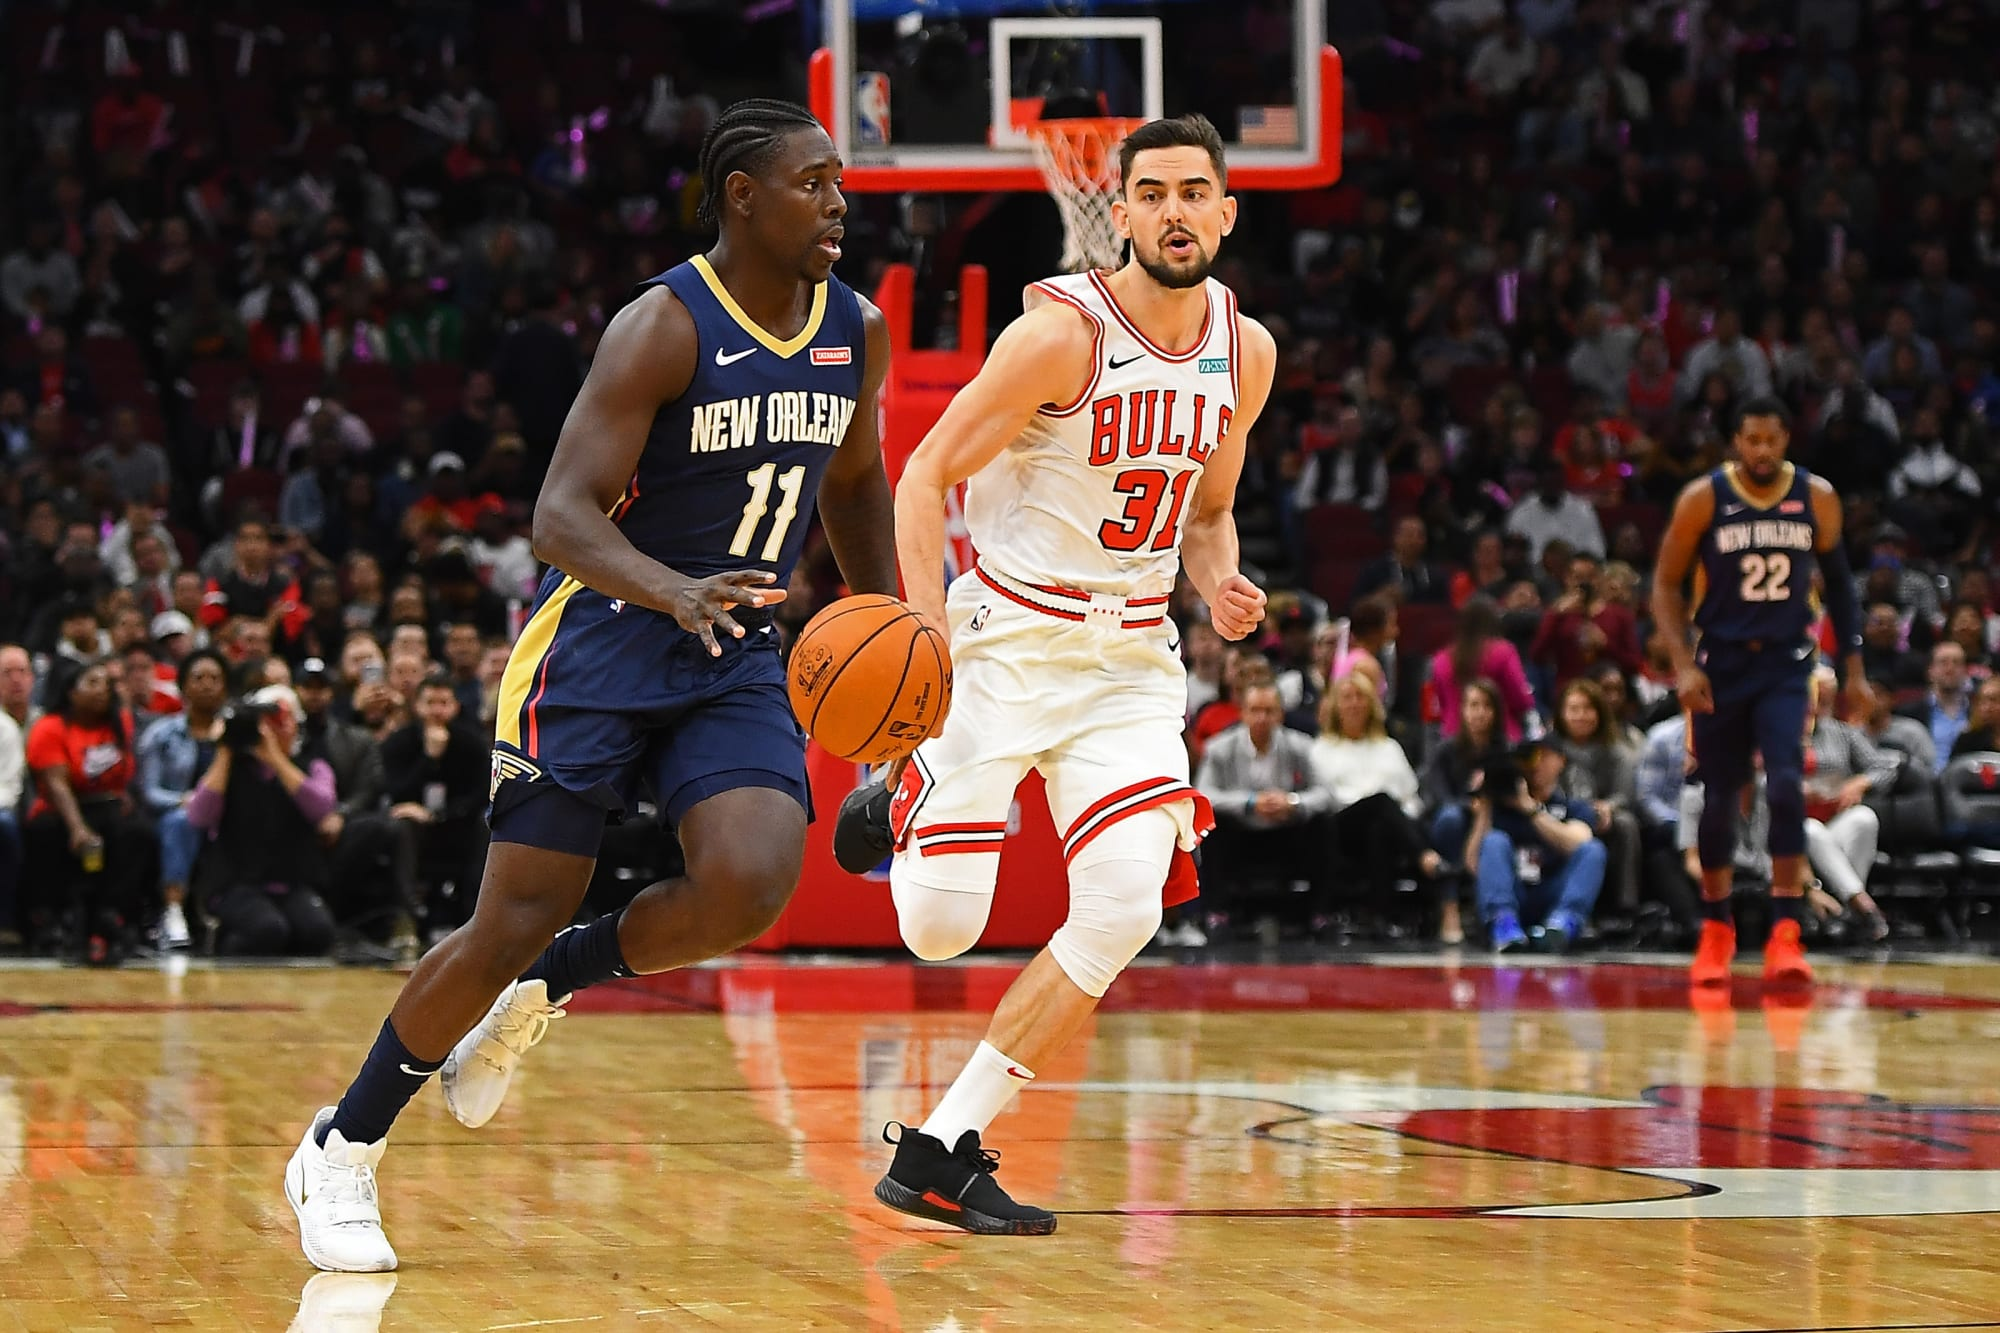 New Orleans Pelicans: Trading Jrue Holiday to Chicago Bulls makes sense